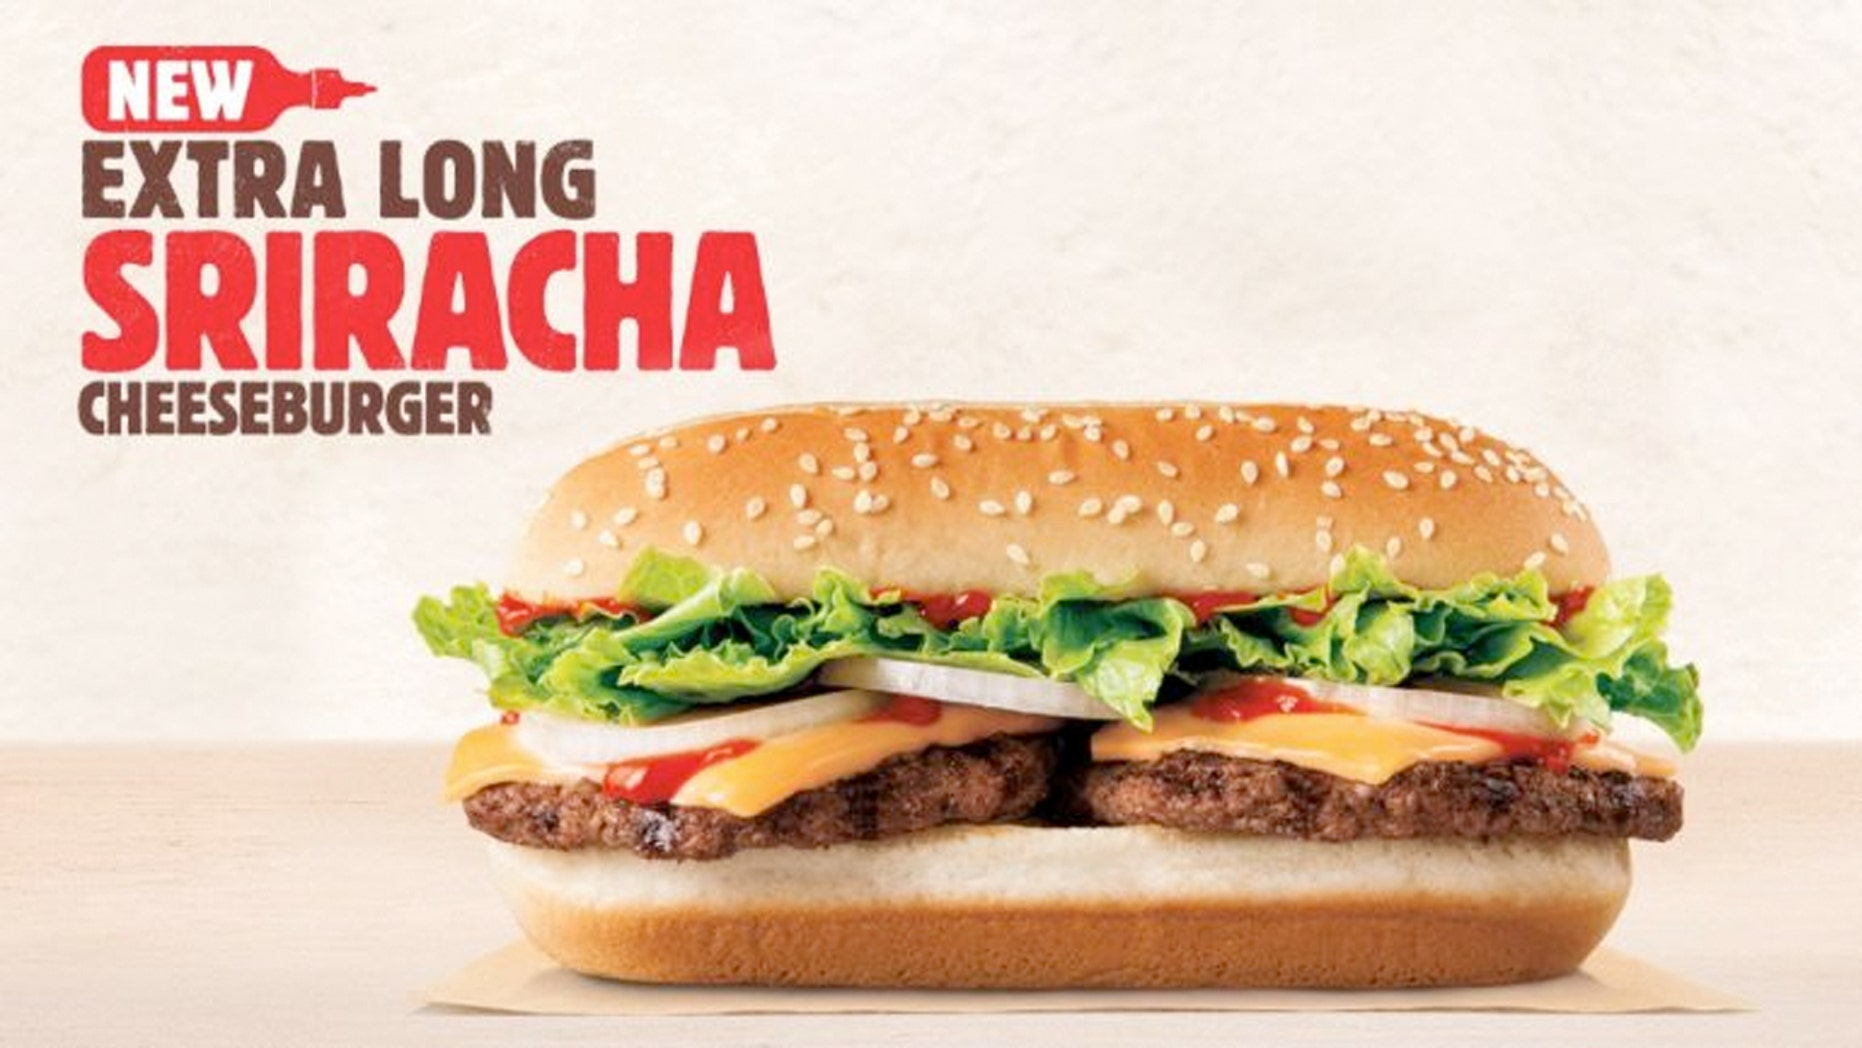 The chain has announced it's adding some spice to it's double-wide burger it first released last summer.